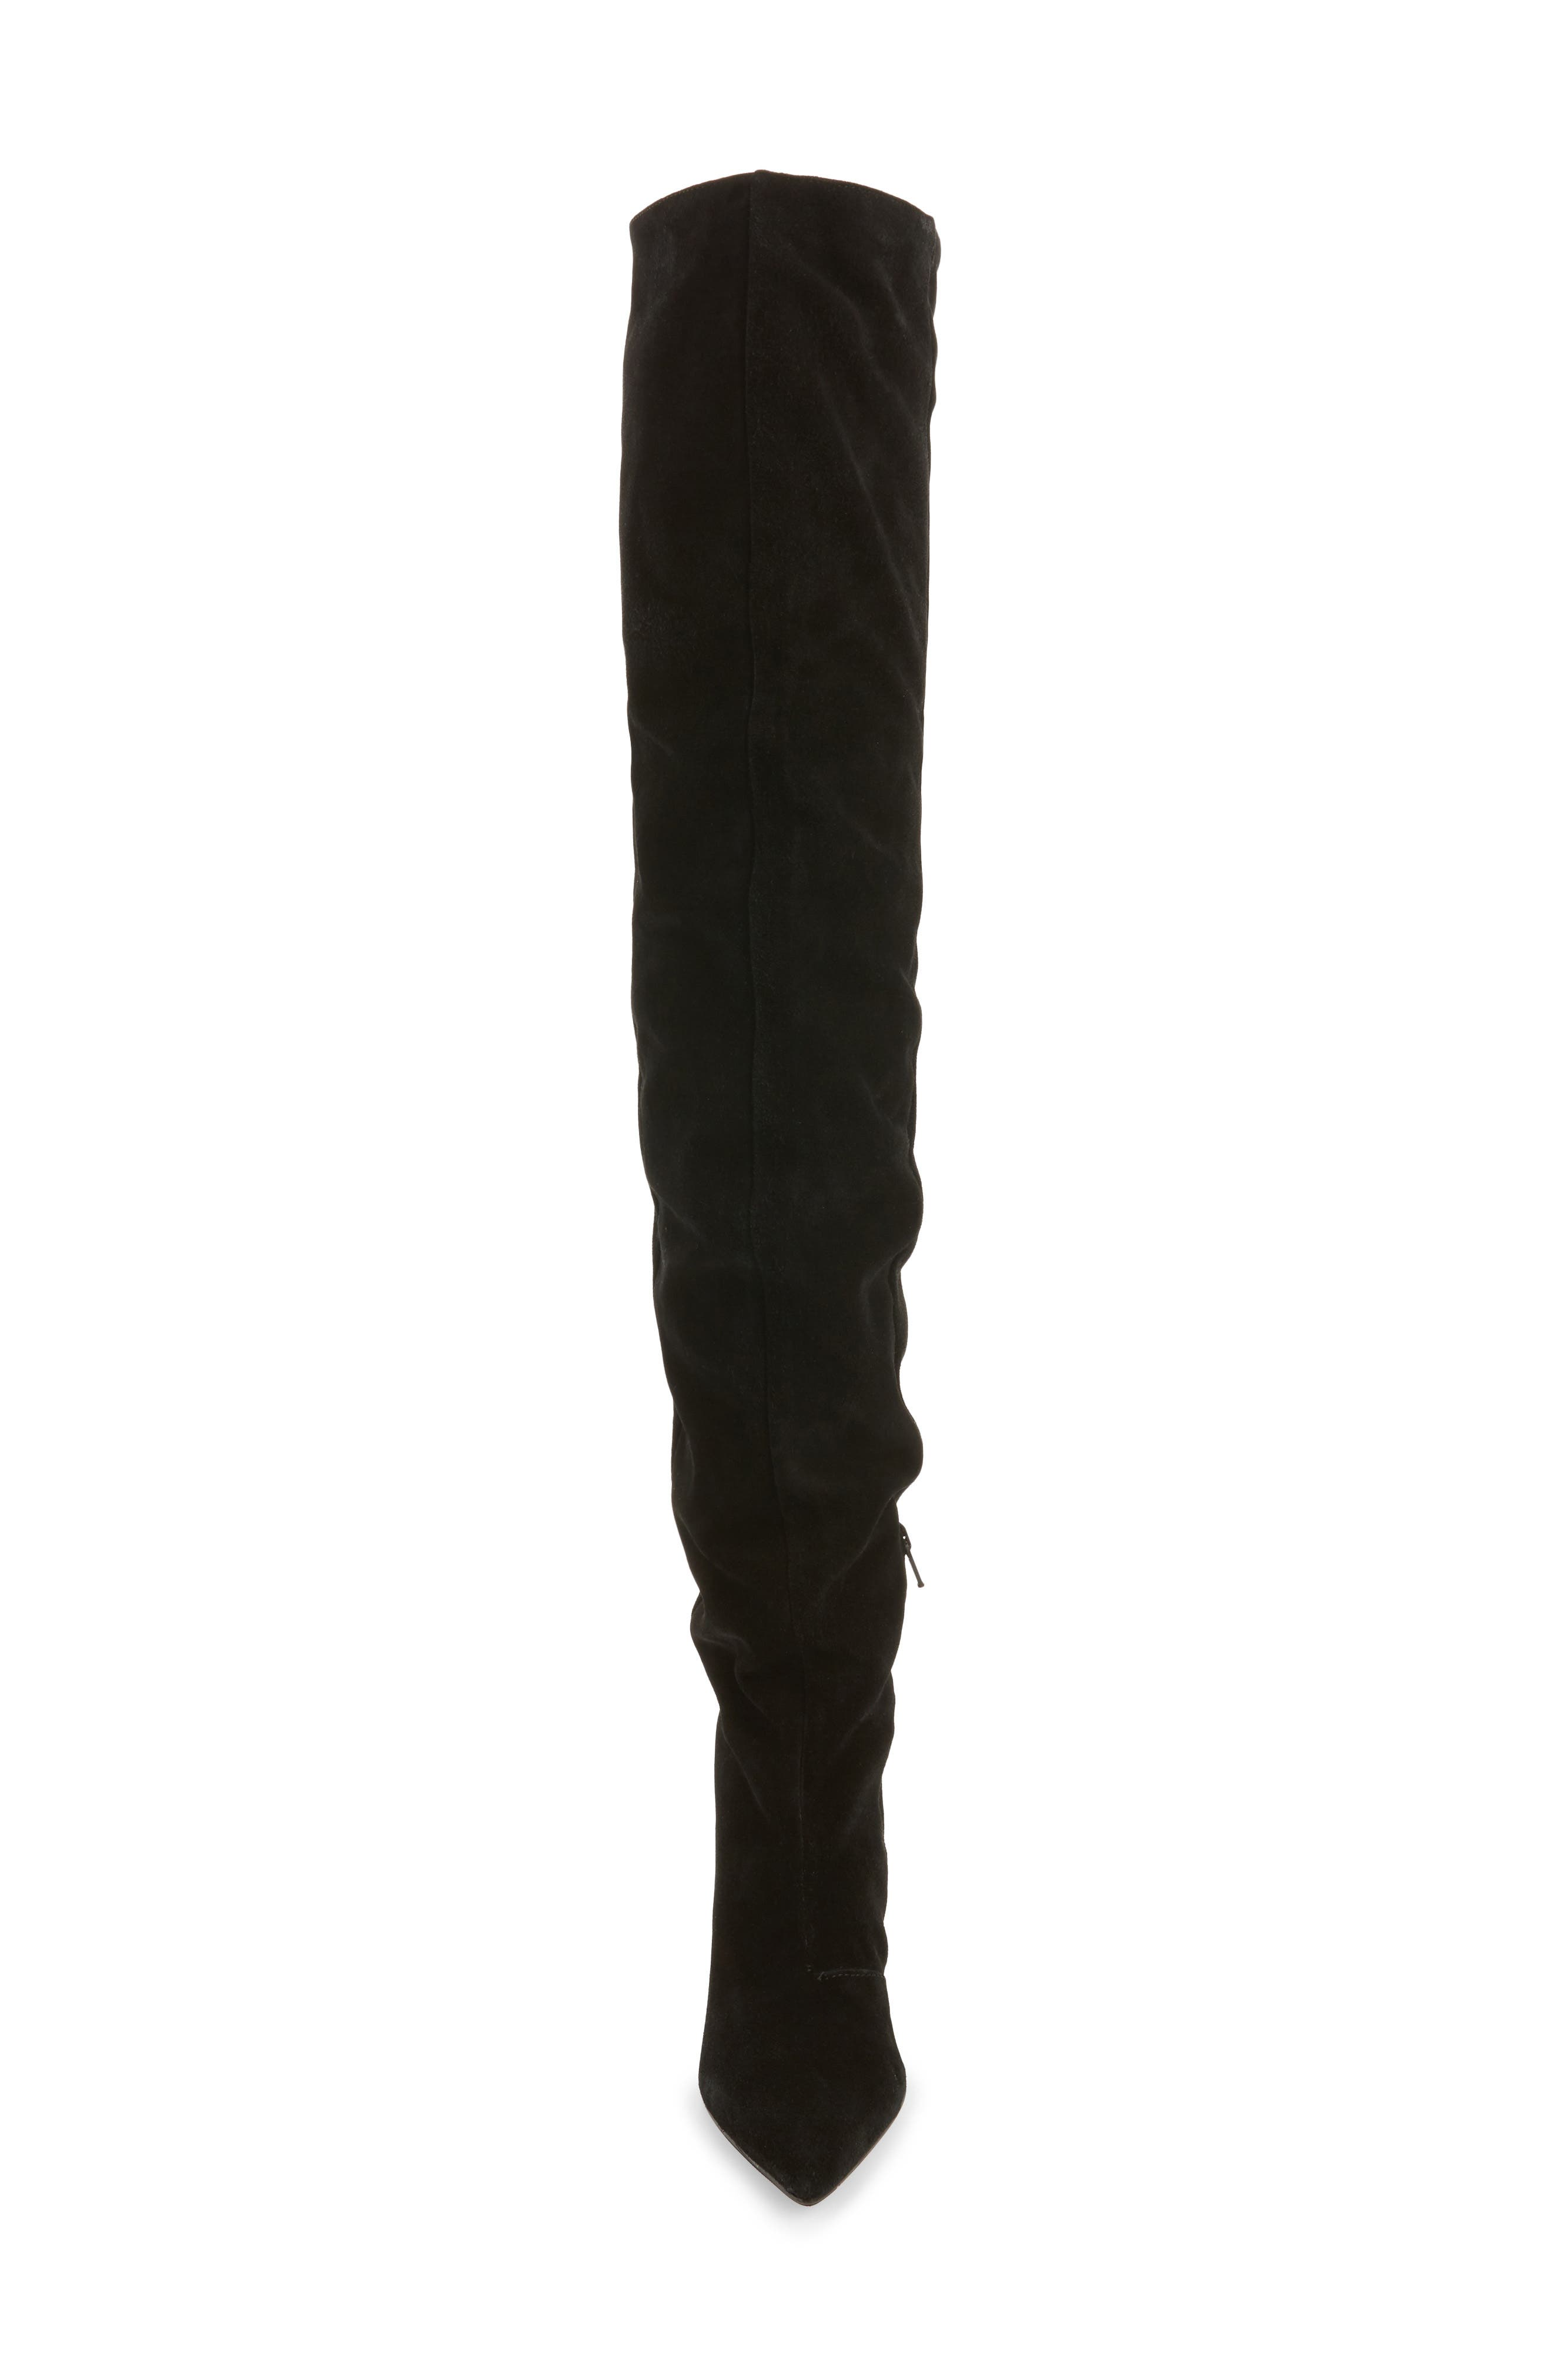 Boxer Thigh High Boots,                             Alternate thumbnail 4, color,                             001